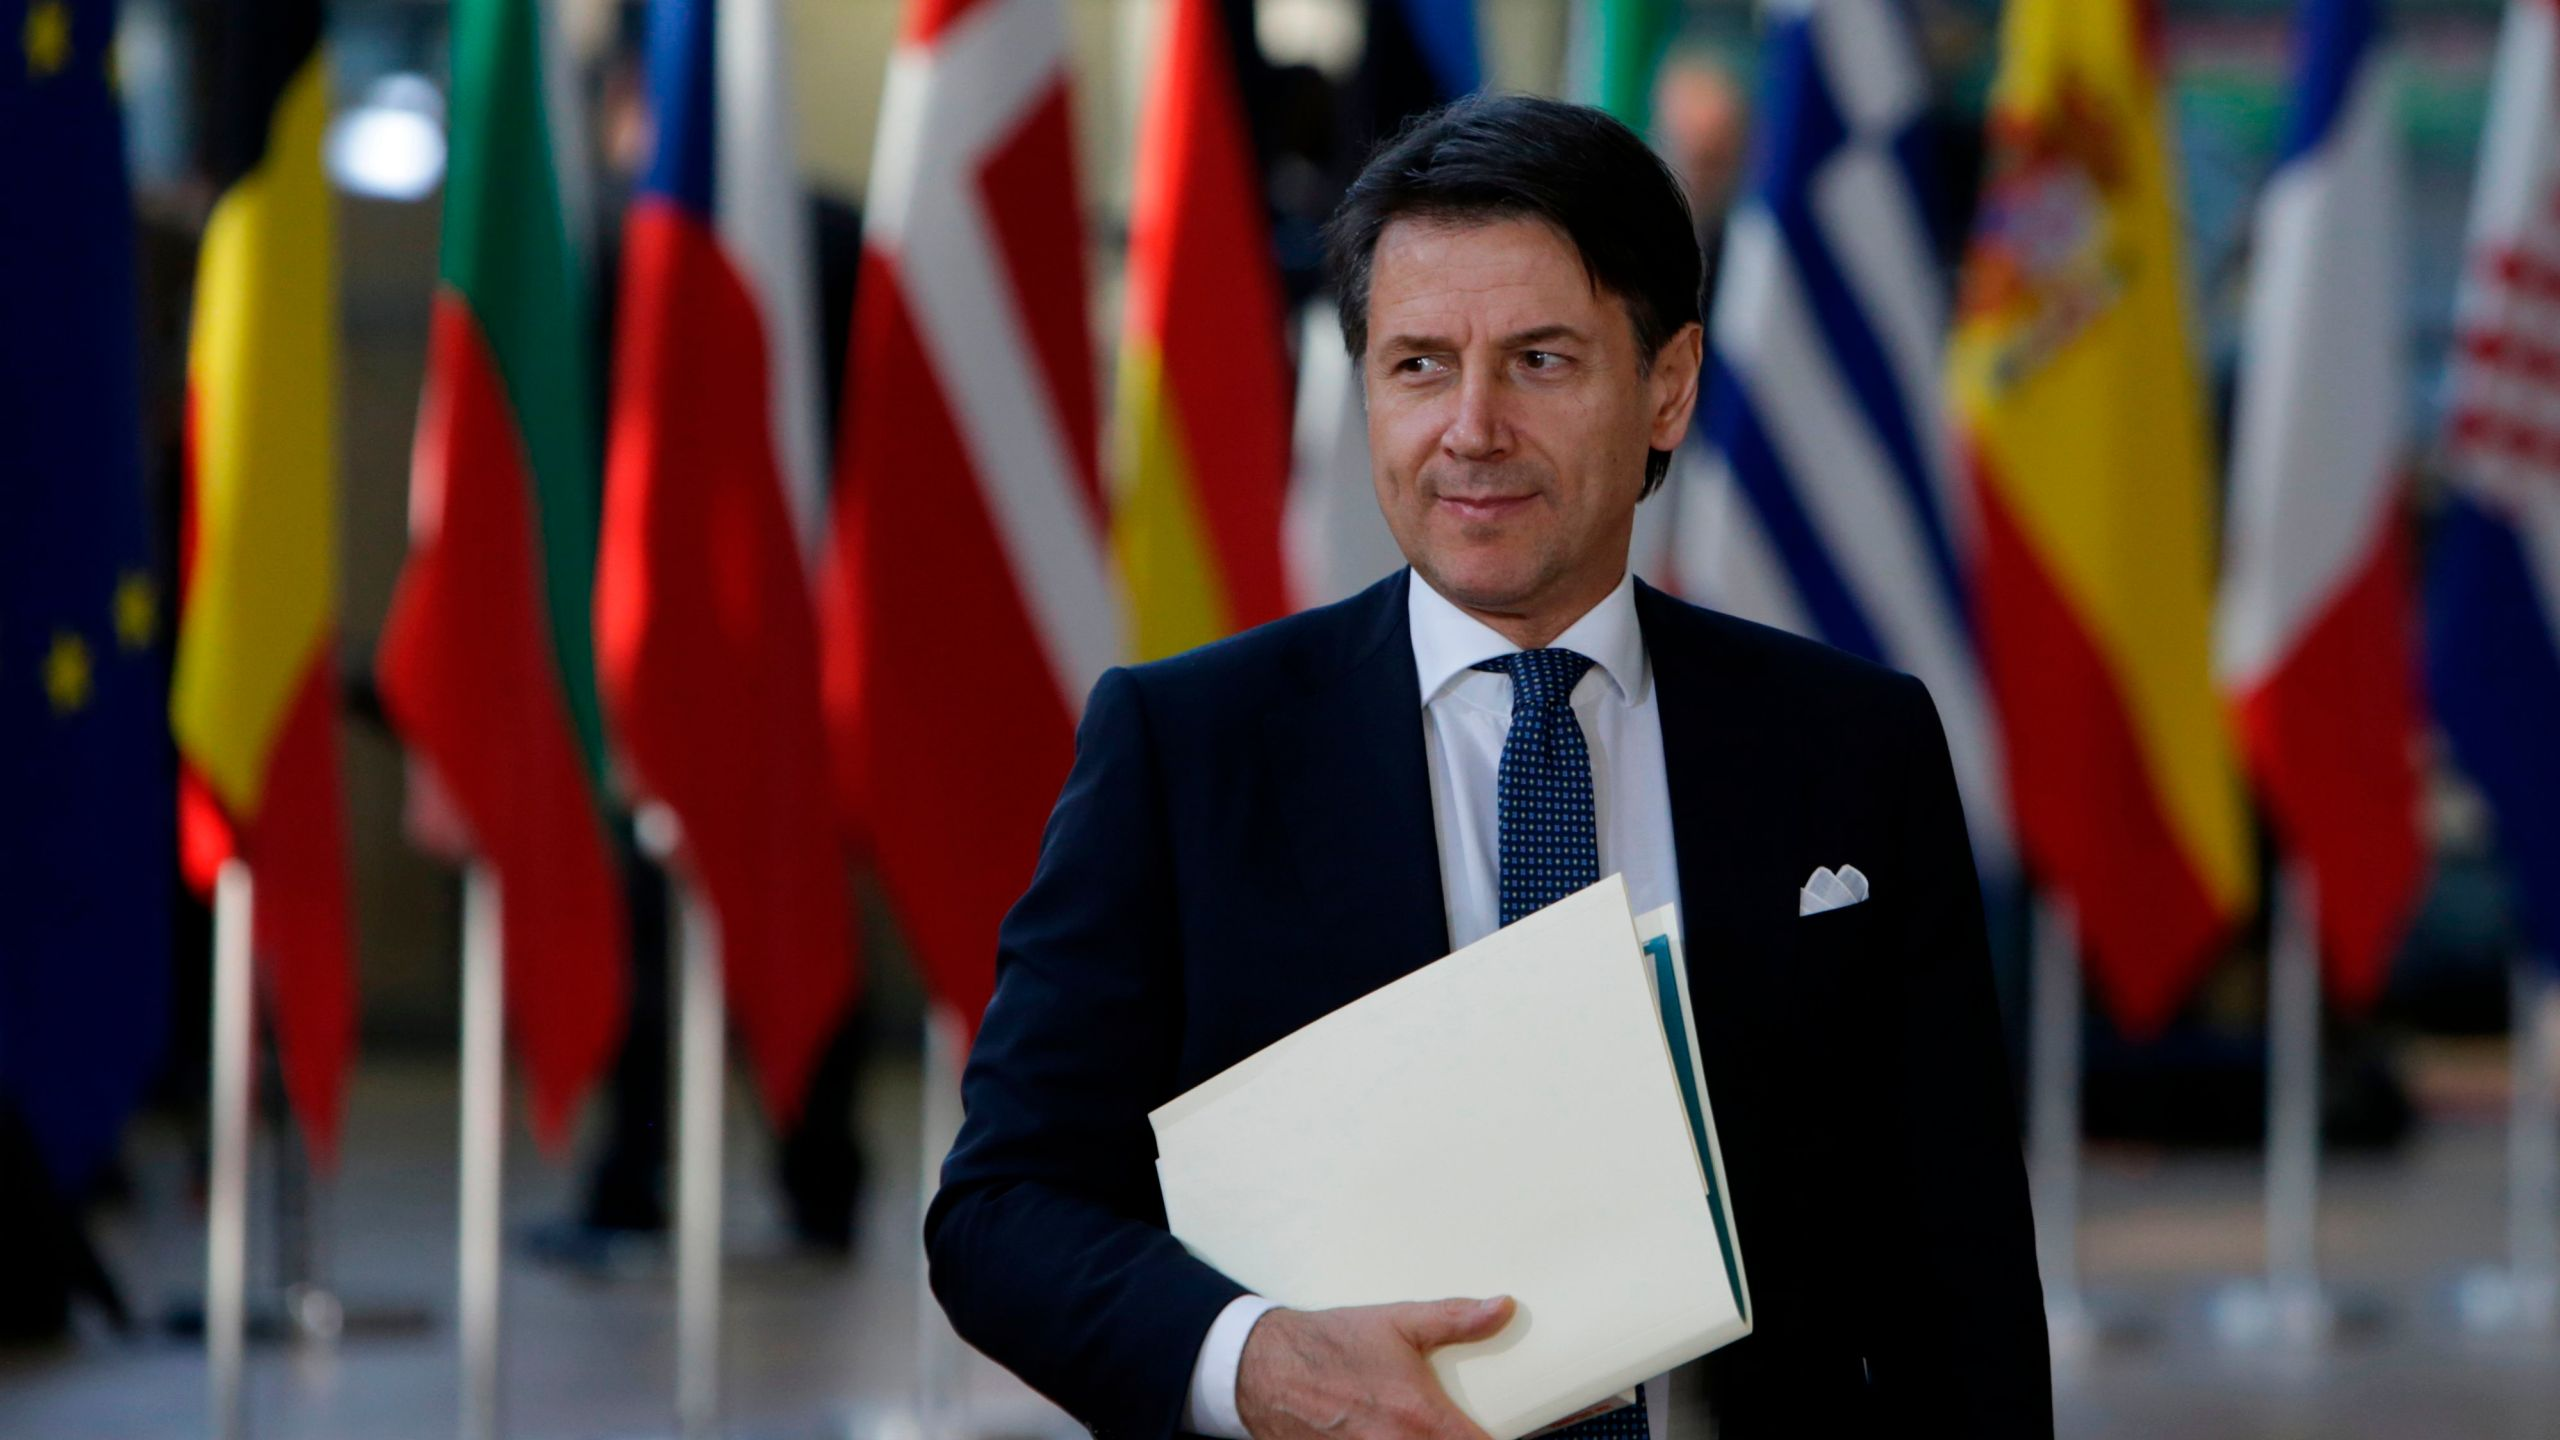 Italy's Prime Minister Giuseppe Conte arrives ahead of a European Council meeting at the European Parliament in Brussels on April 10, 2019. (Credit: Aris Oikonomou //AFP/Getty Images)